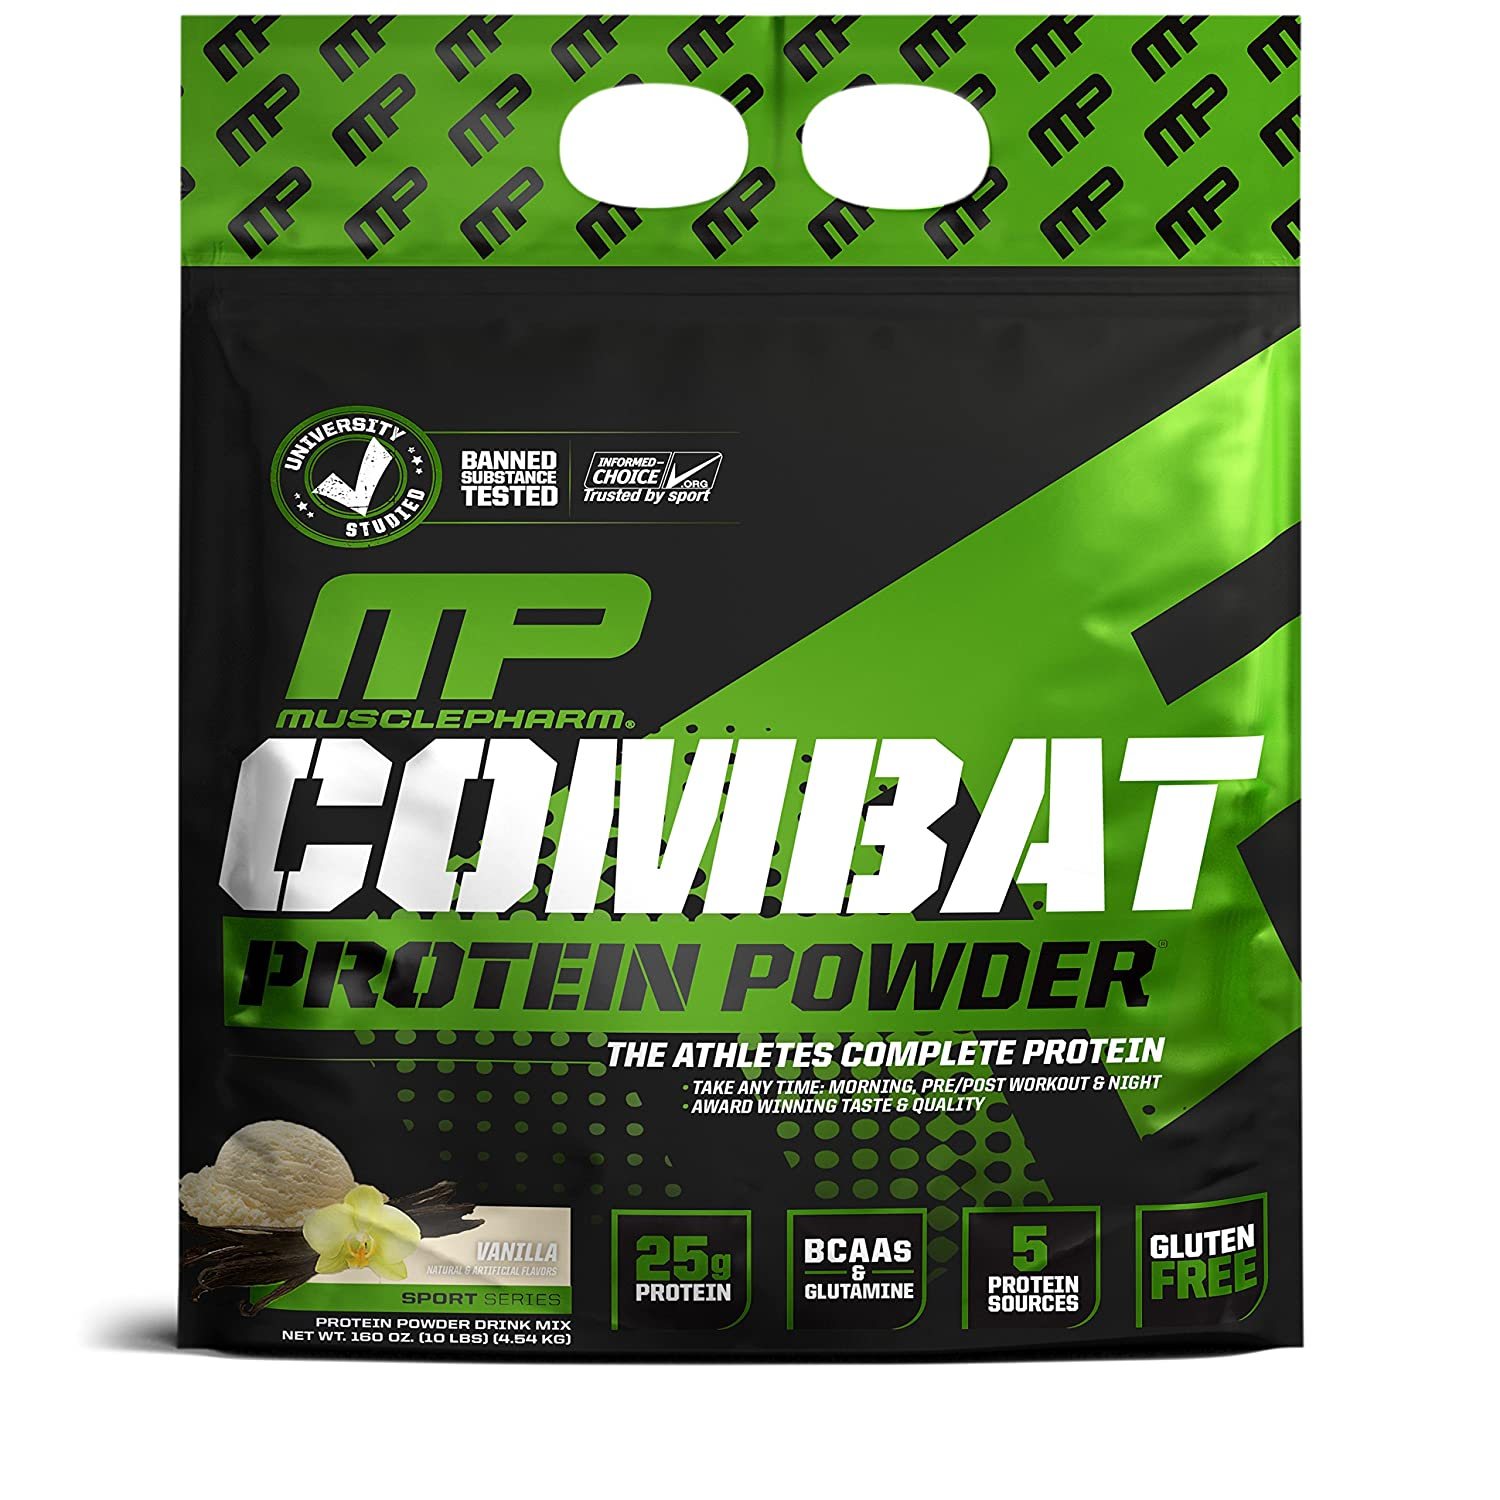 MusclePharm Combat Protein Powder, Essential Whey Protein Powder, Isolate Whey Protein, Casein and Egg Protein with BCAAs and Glutamine for Recovery, Vanilla, 10-Pound, 125 Servings